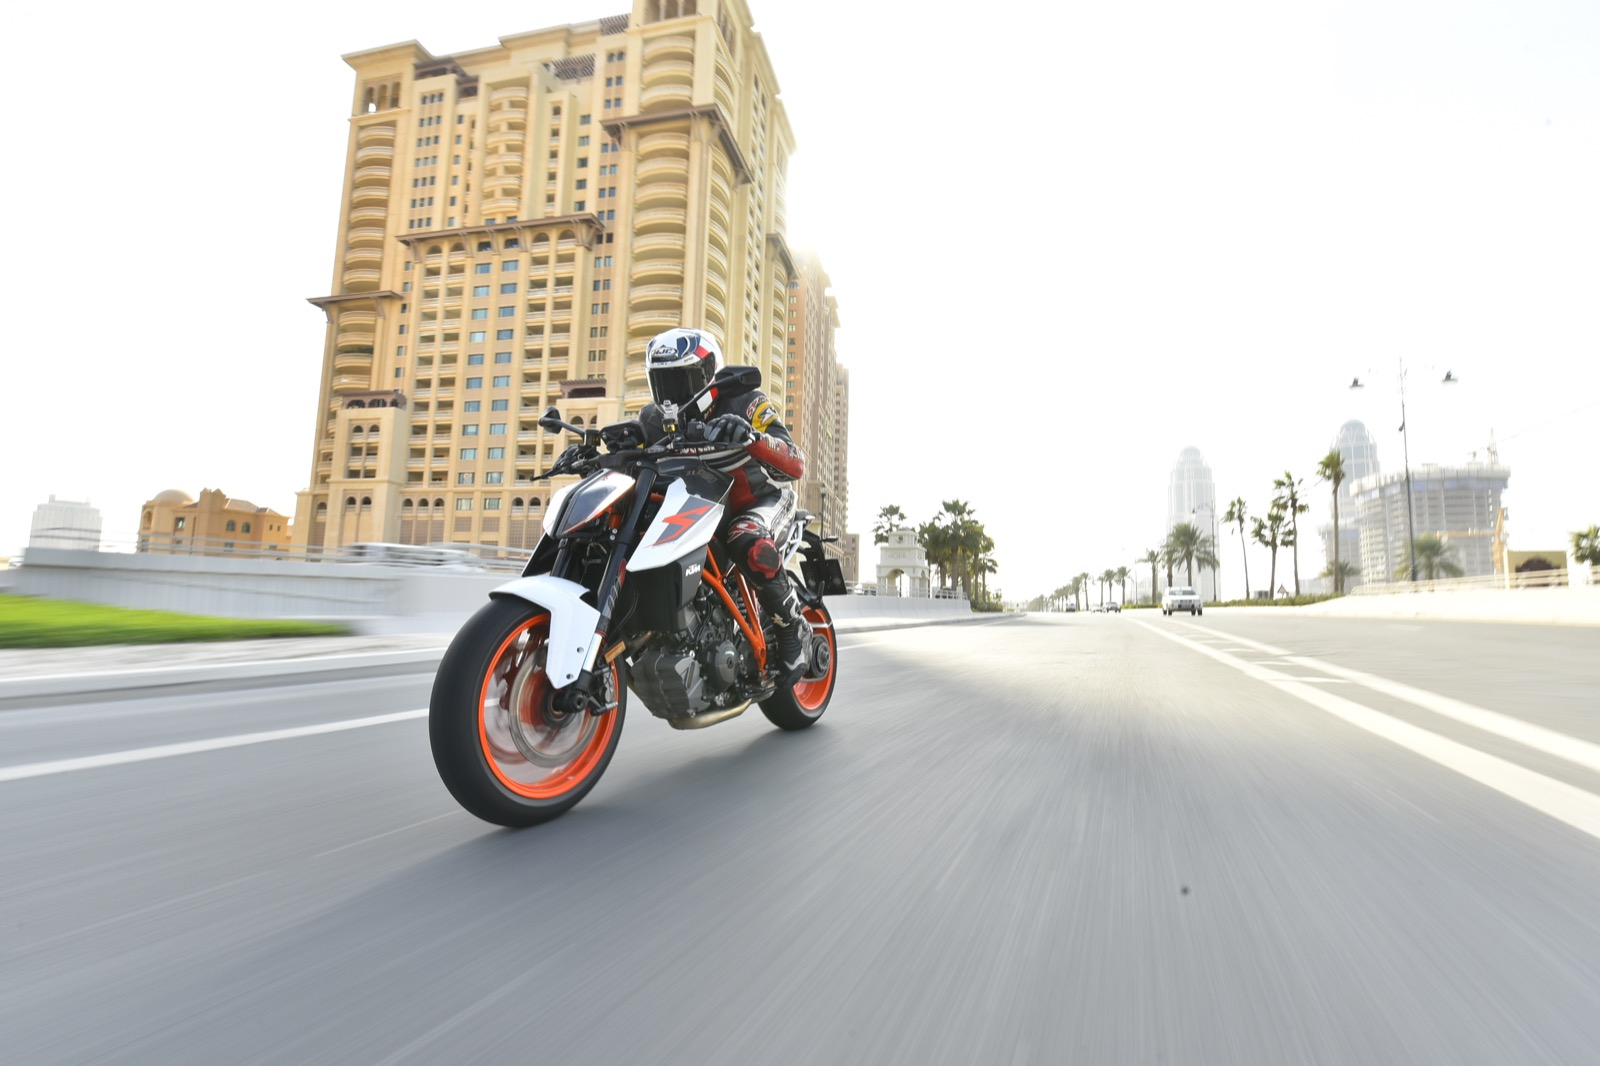 KTM 1290 Super Duke R 2017 fotos